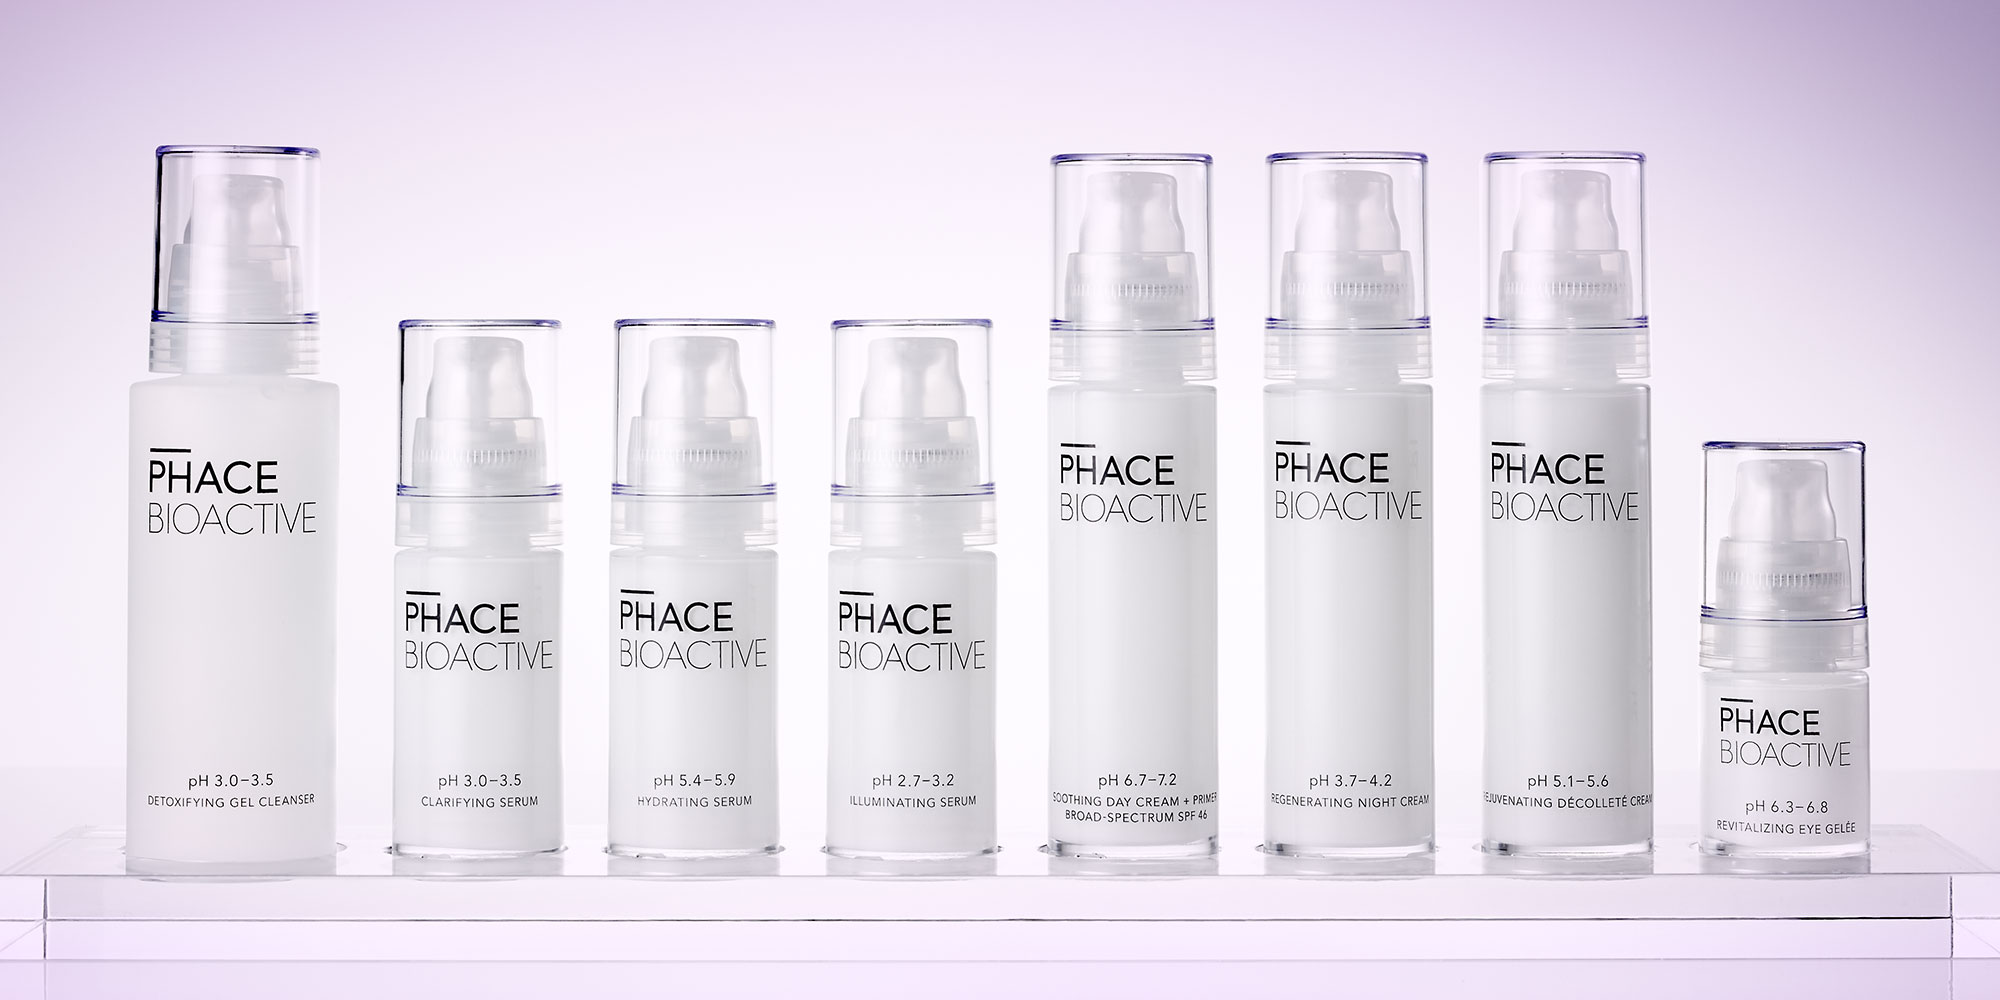 Phace Bioactive Primary Packaging Lineup